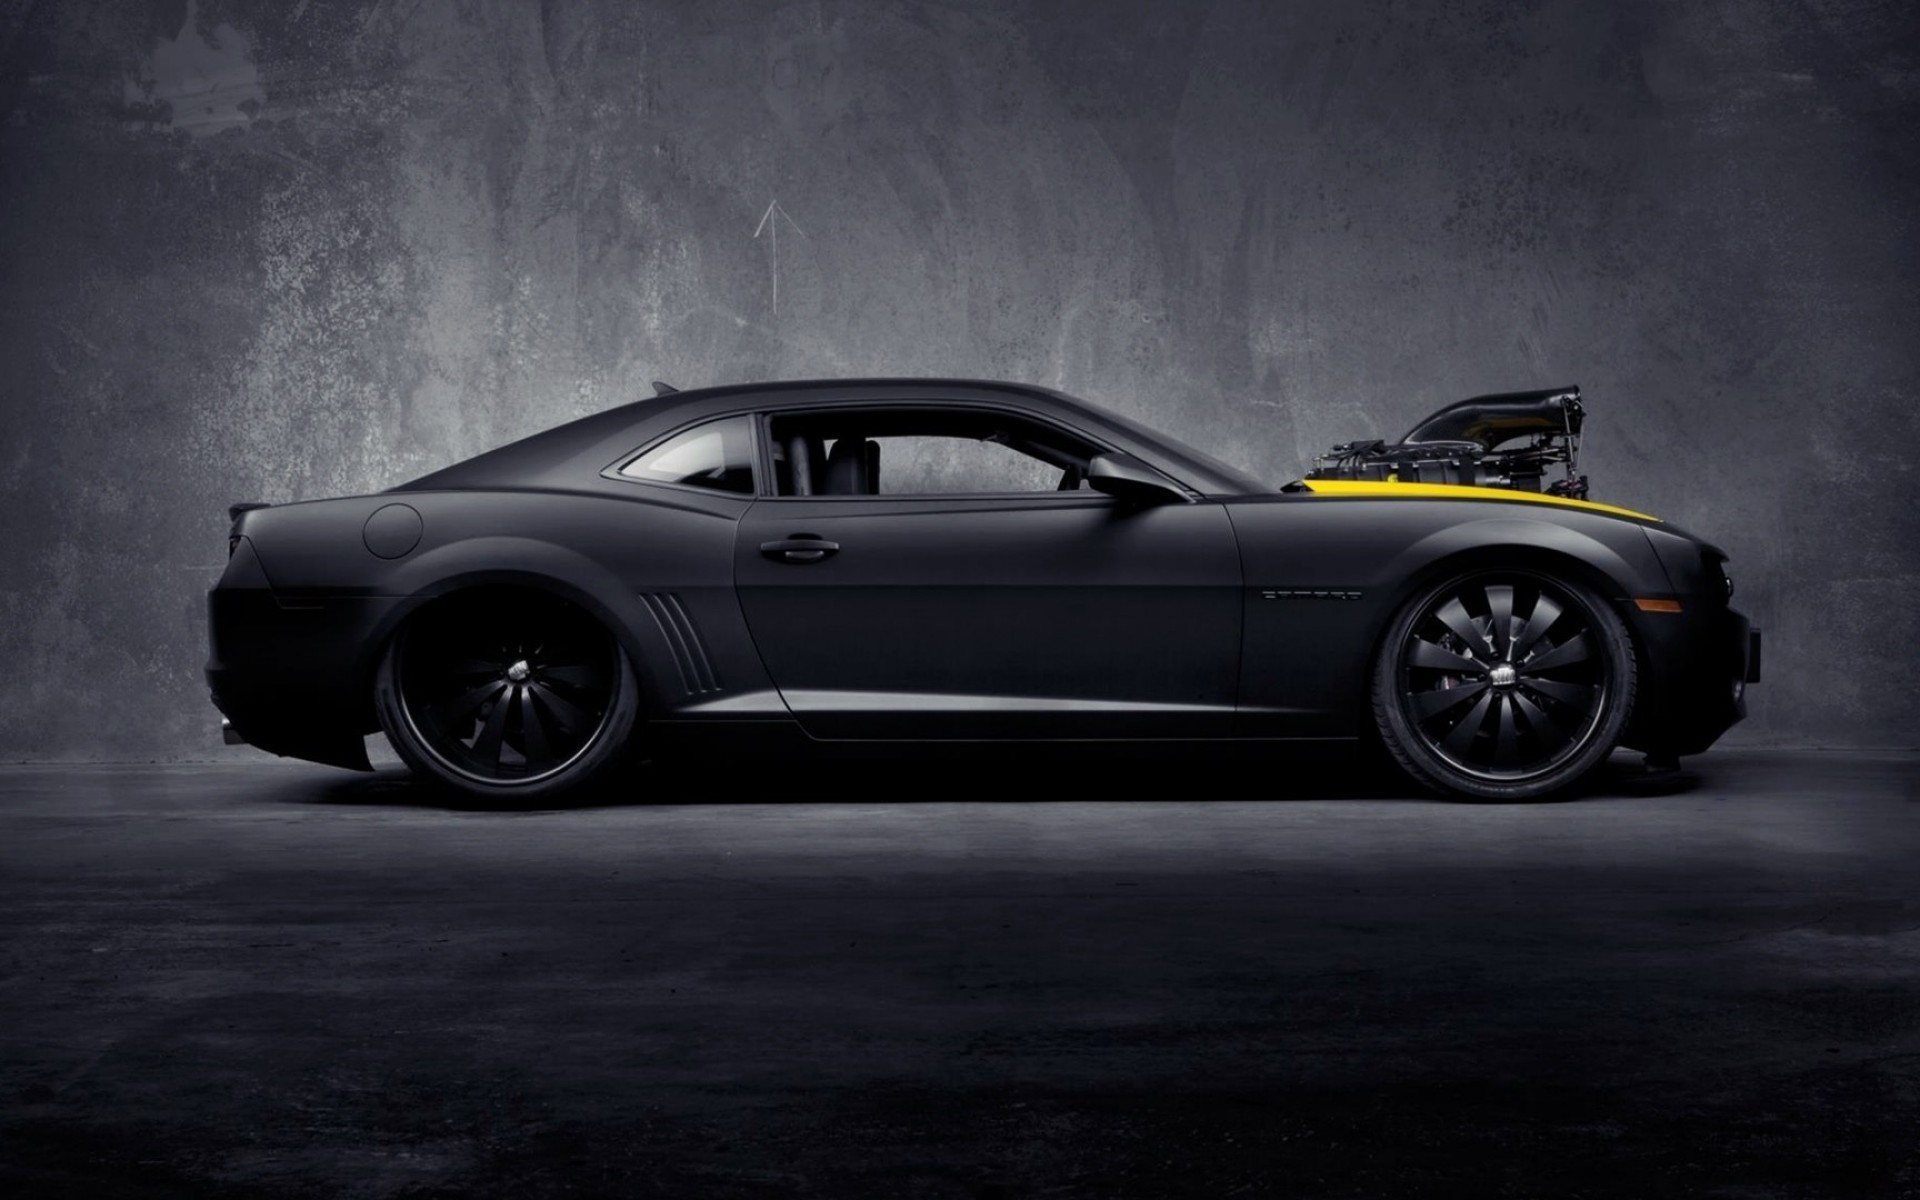 http://getwallpapers.com/wallpaper/full/a/e/5/939141-download-muscle-cars-wallpapers-high-resolution-1920x1200.jpg Muscle Cars Wallpapers High Resolution